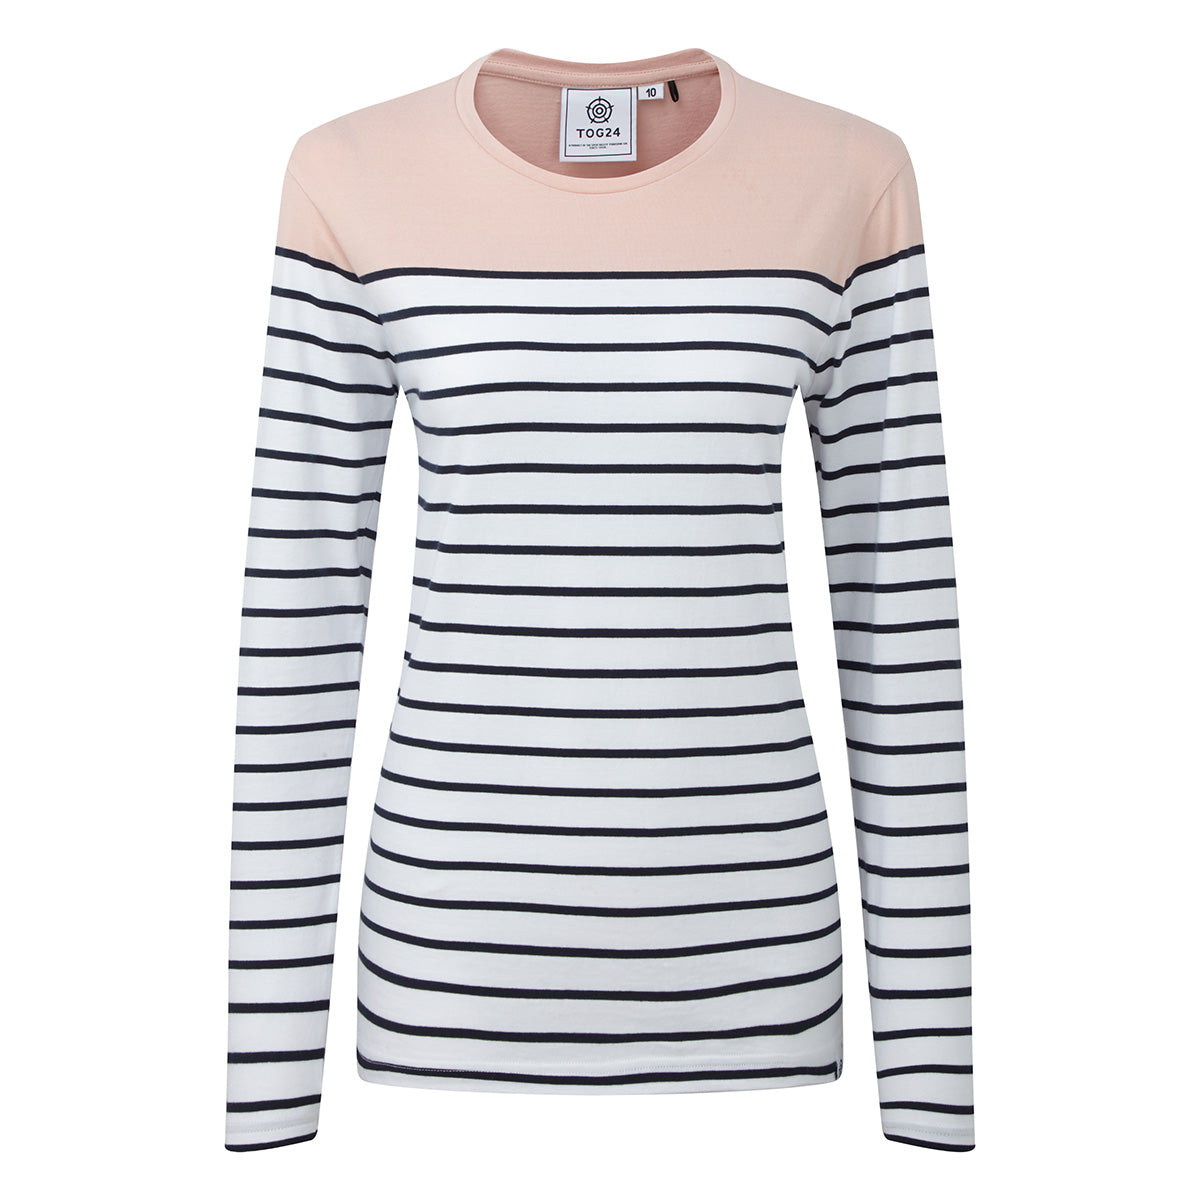 Betsy Womens Long Sleeve Stripe T-Shirt - Rose/White/Indigo image 4